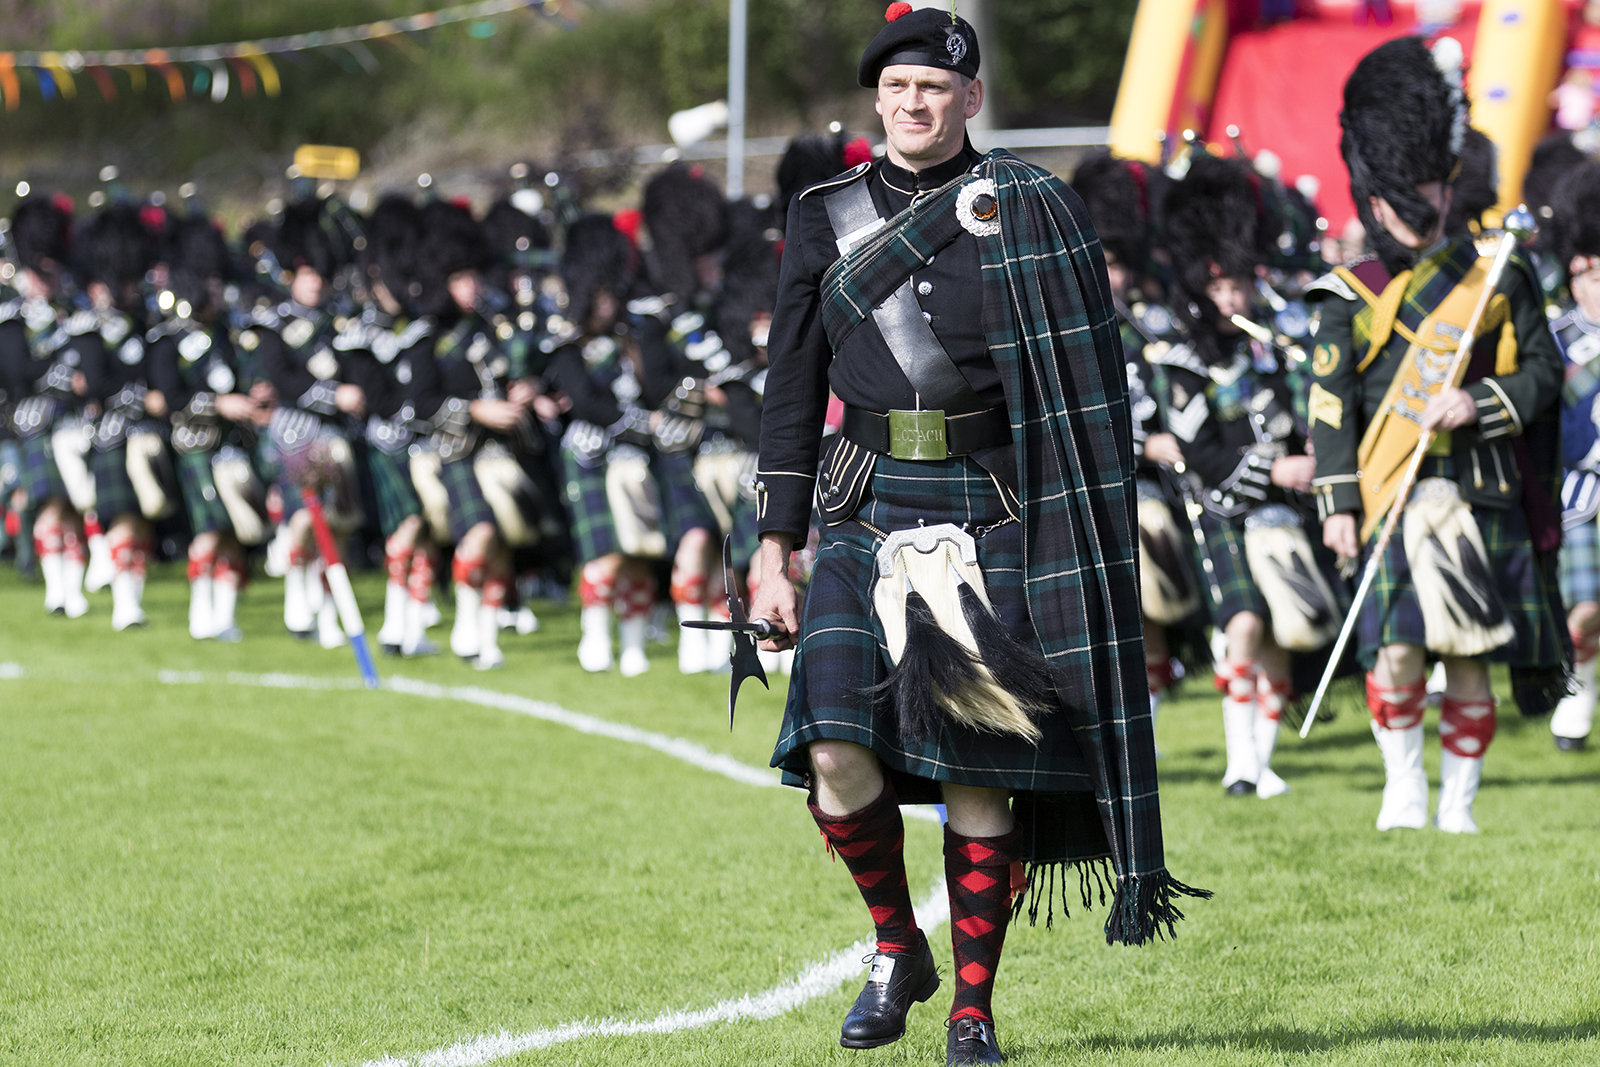 Massed Pipe Band at a Highland Games event in Scotland.